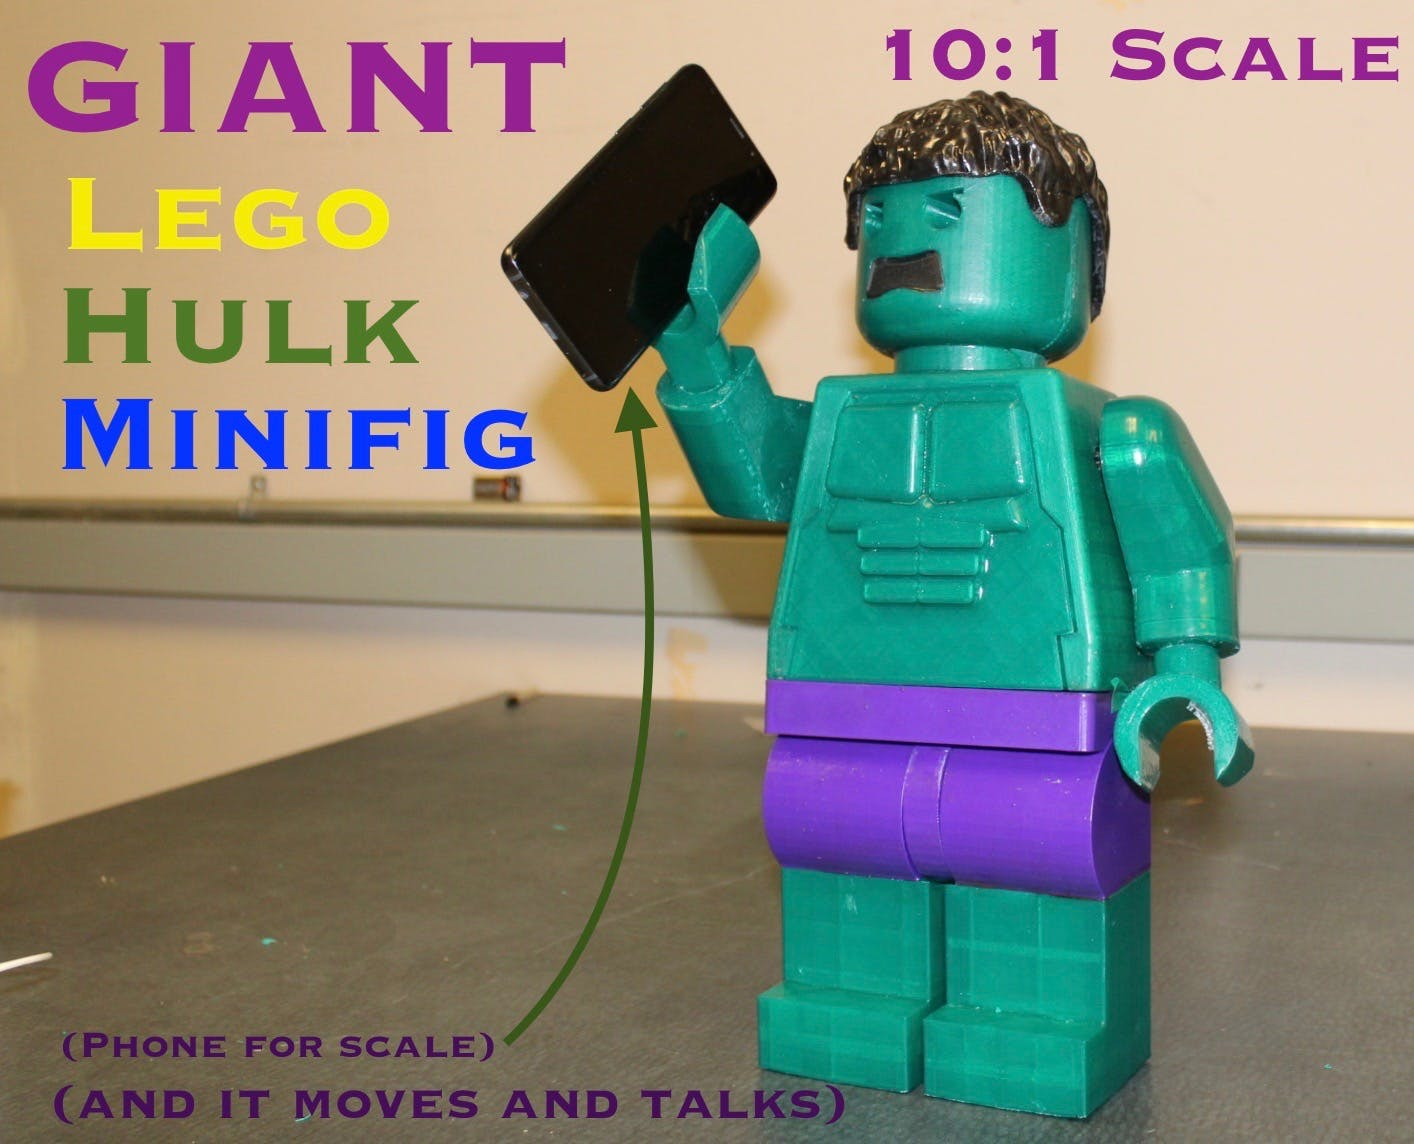 Giant Lego Hulk Minifig (10:1 Scale) with a Twist